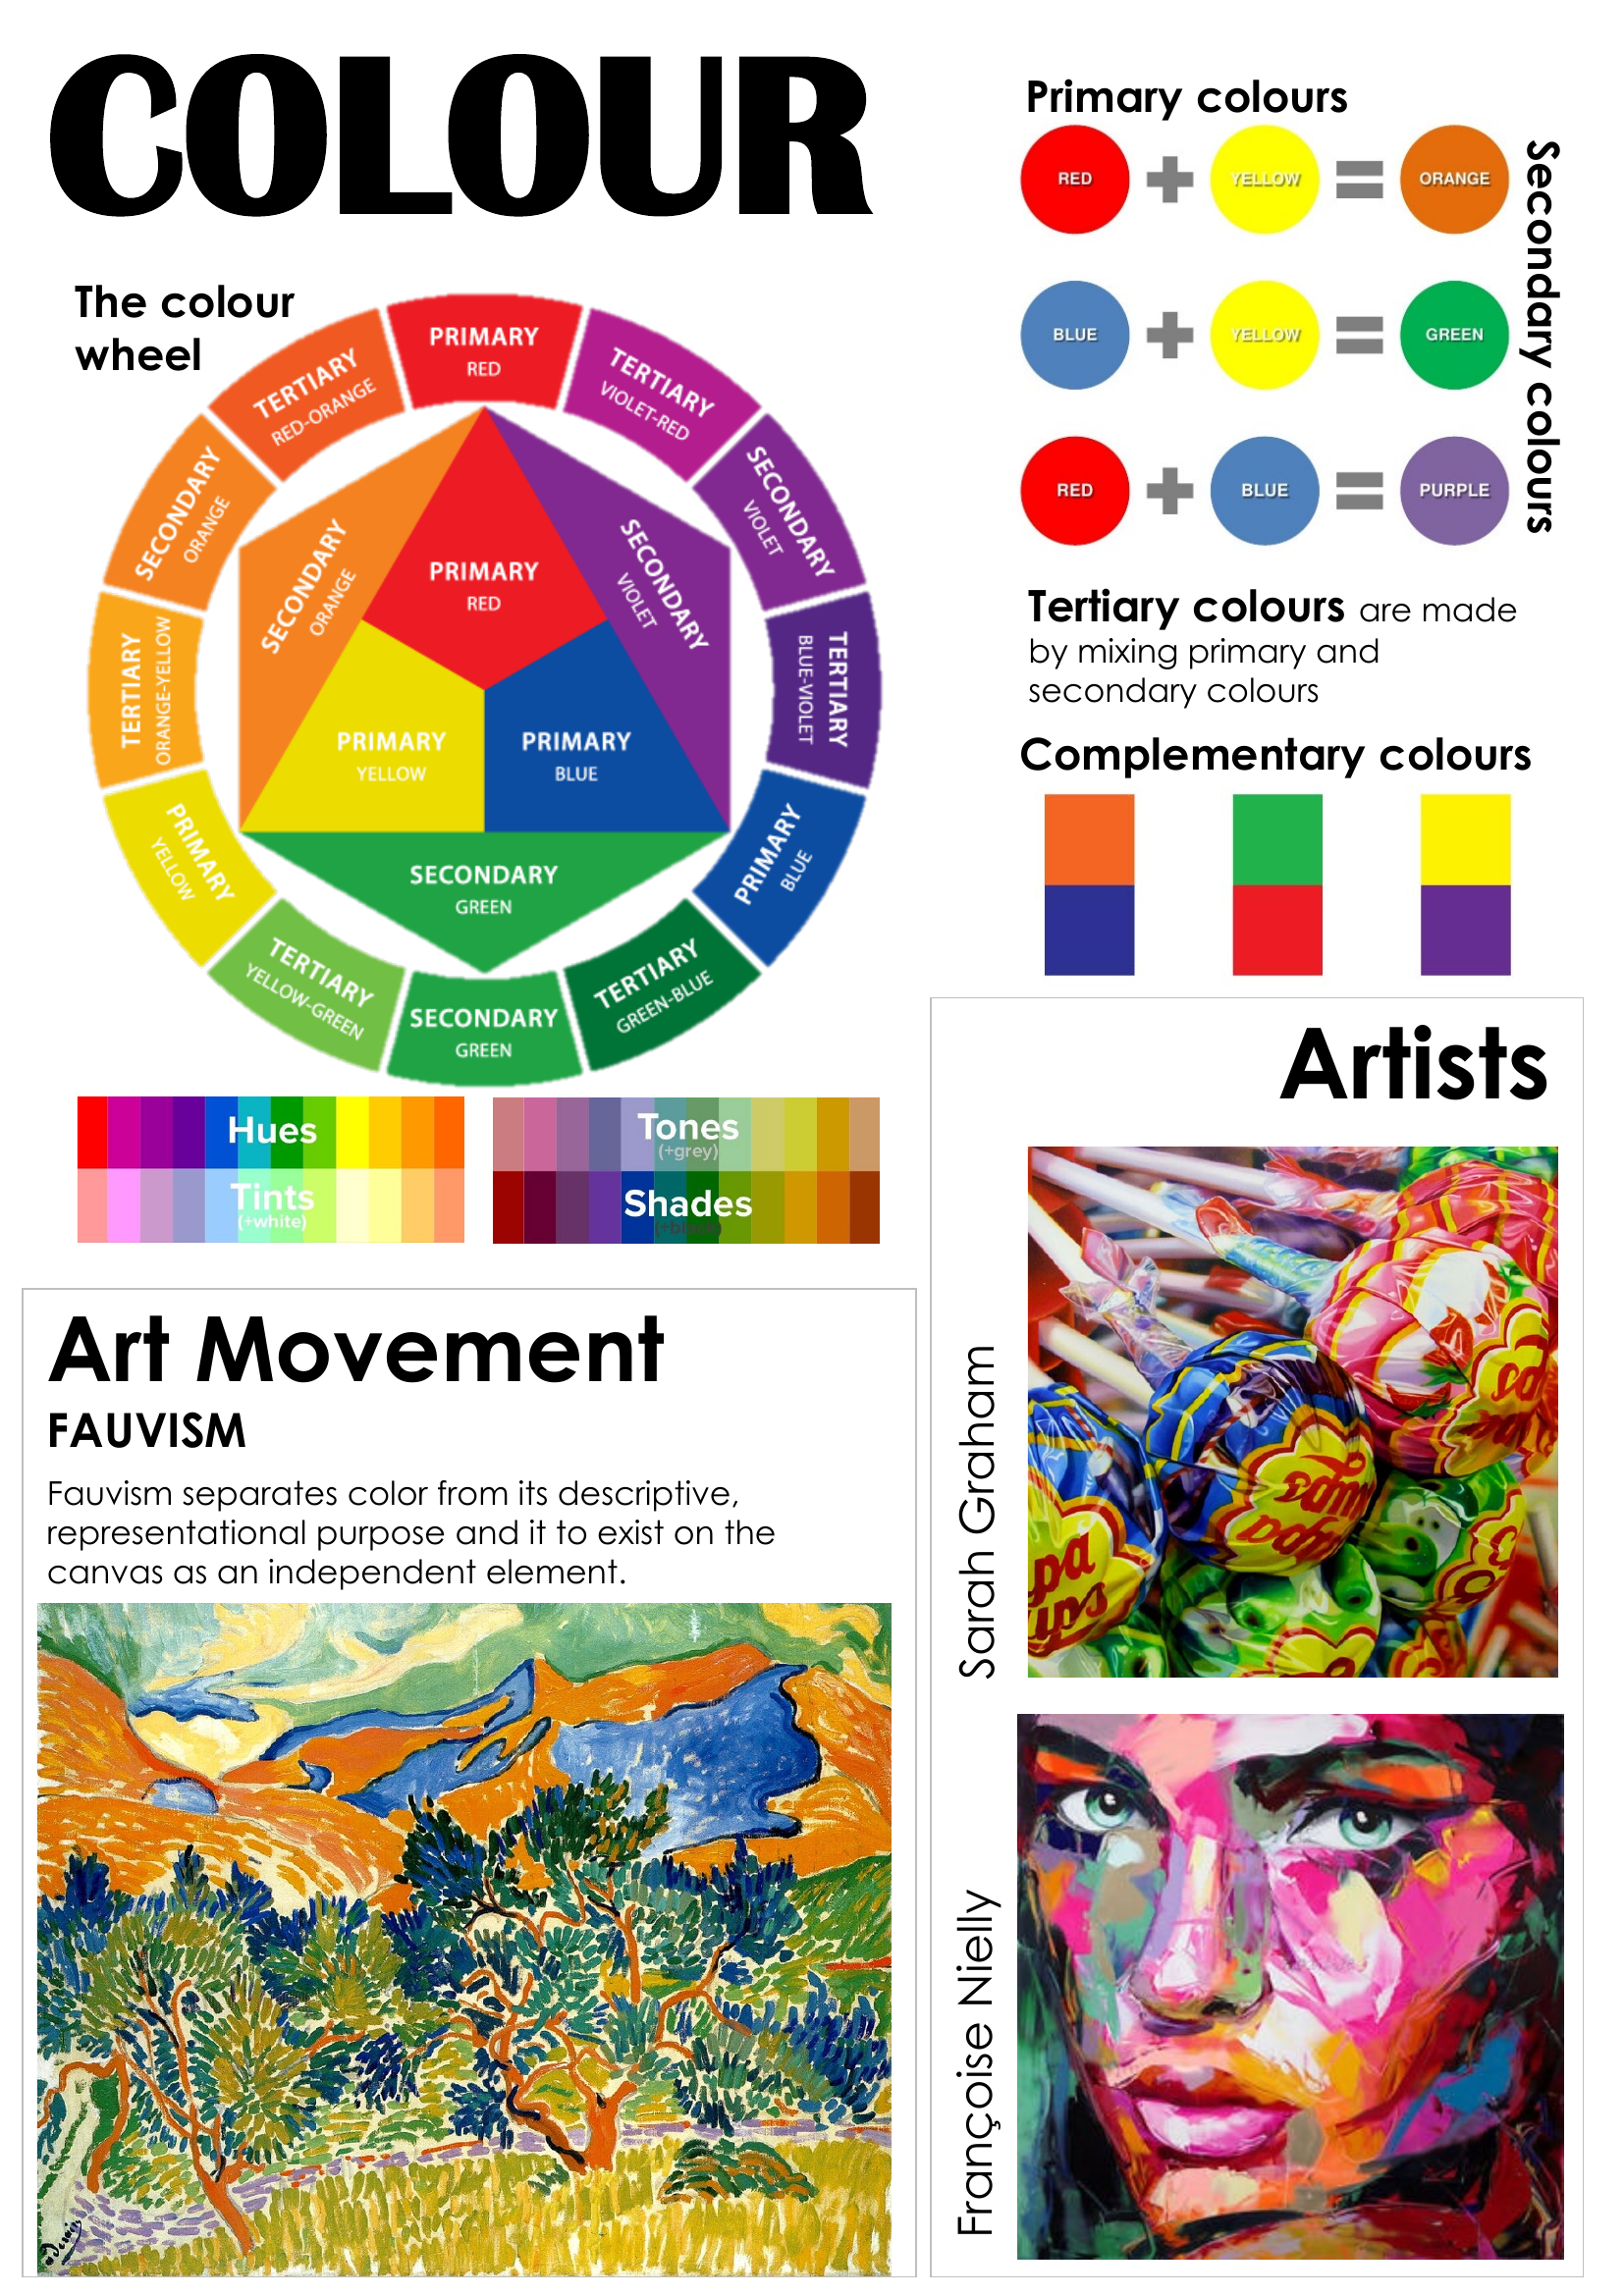 Art Formal Elements Display And Teaching Posters Teaching Resources Elements Of Art Color Art Room Posters Formal Elements Of Art [ 2339 x 1654 Pixel ]